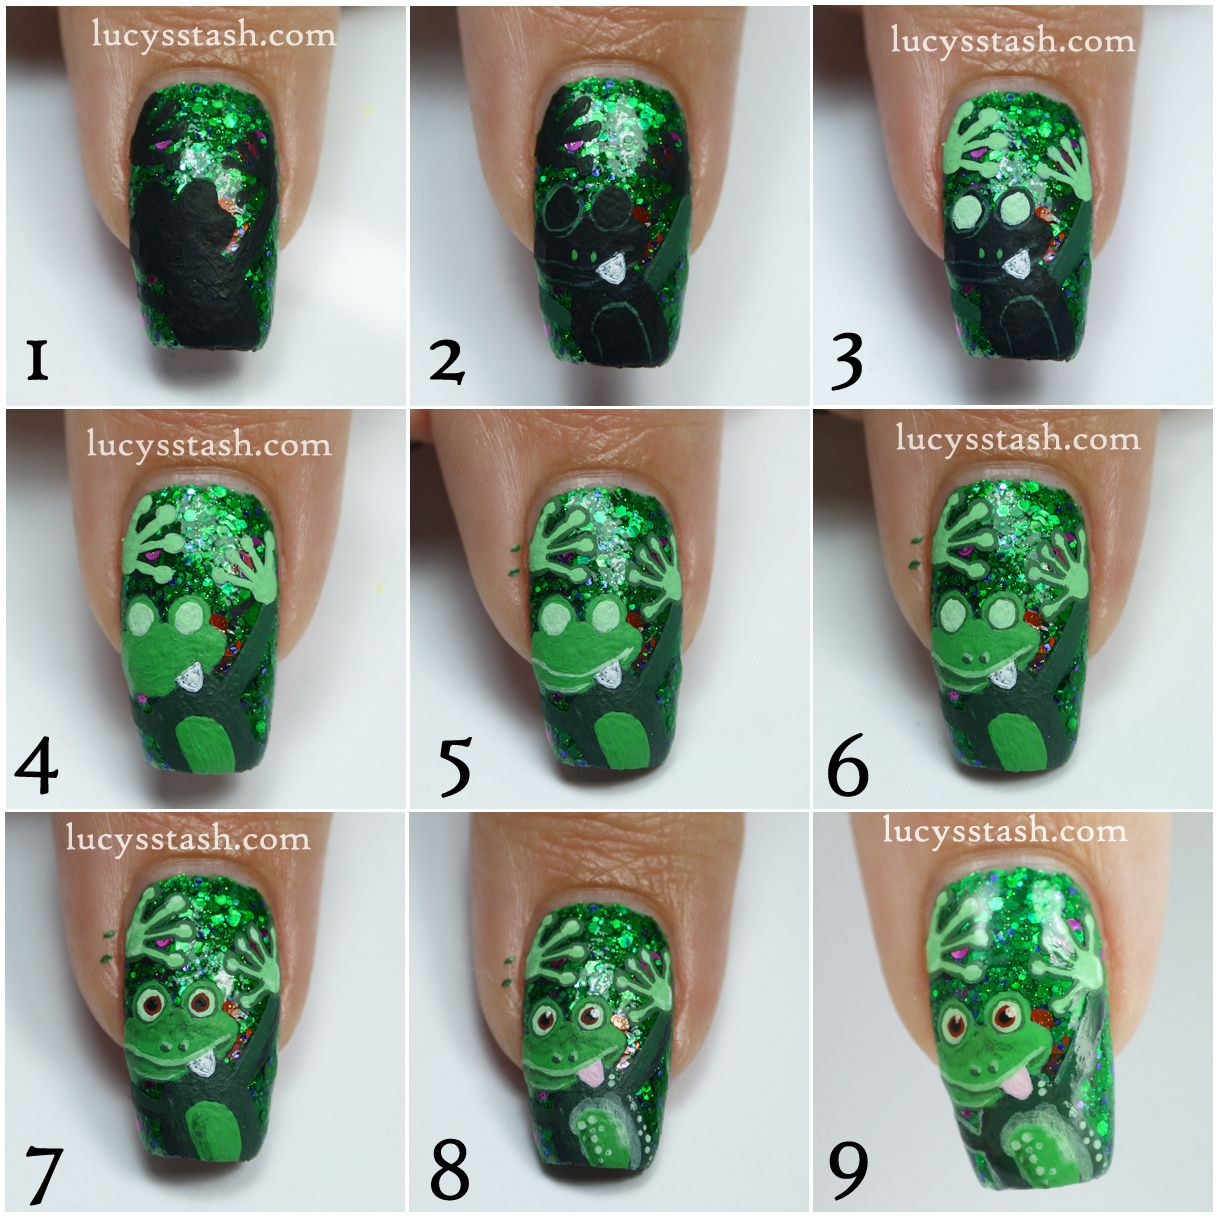 Cheeky Frog Nail Art Design feat. Femme Fatale Noble Garden